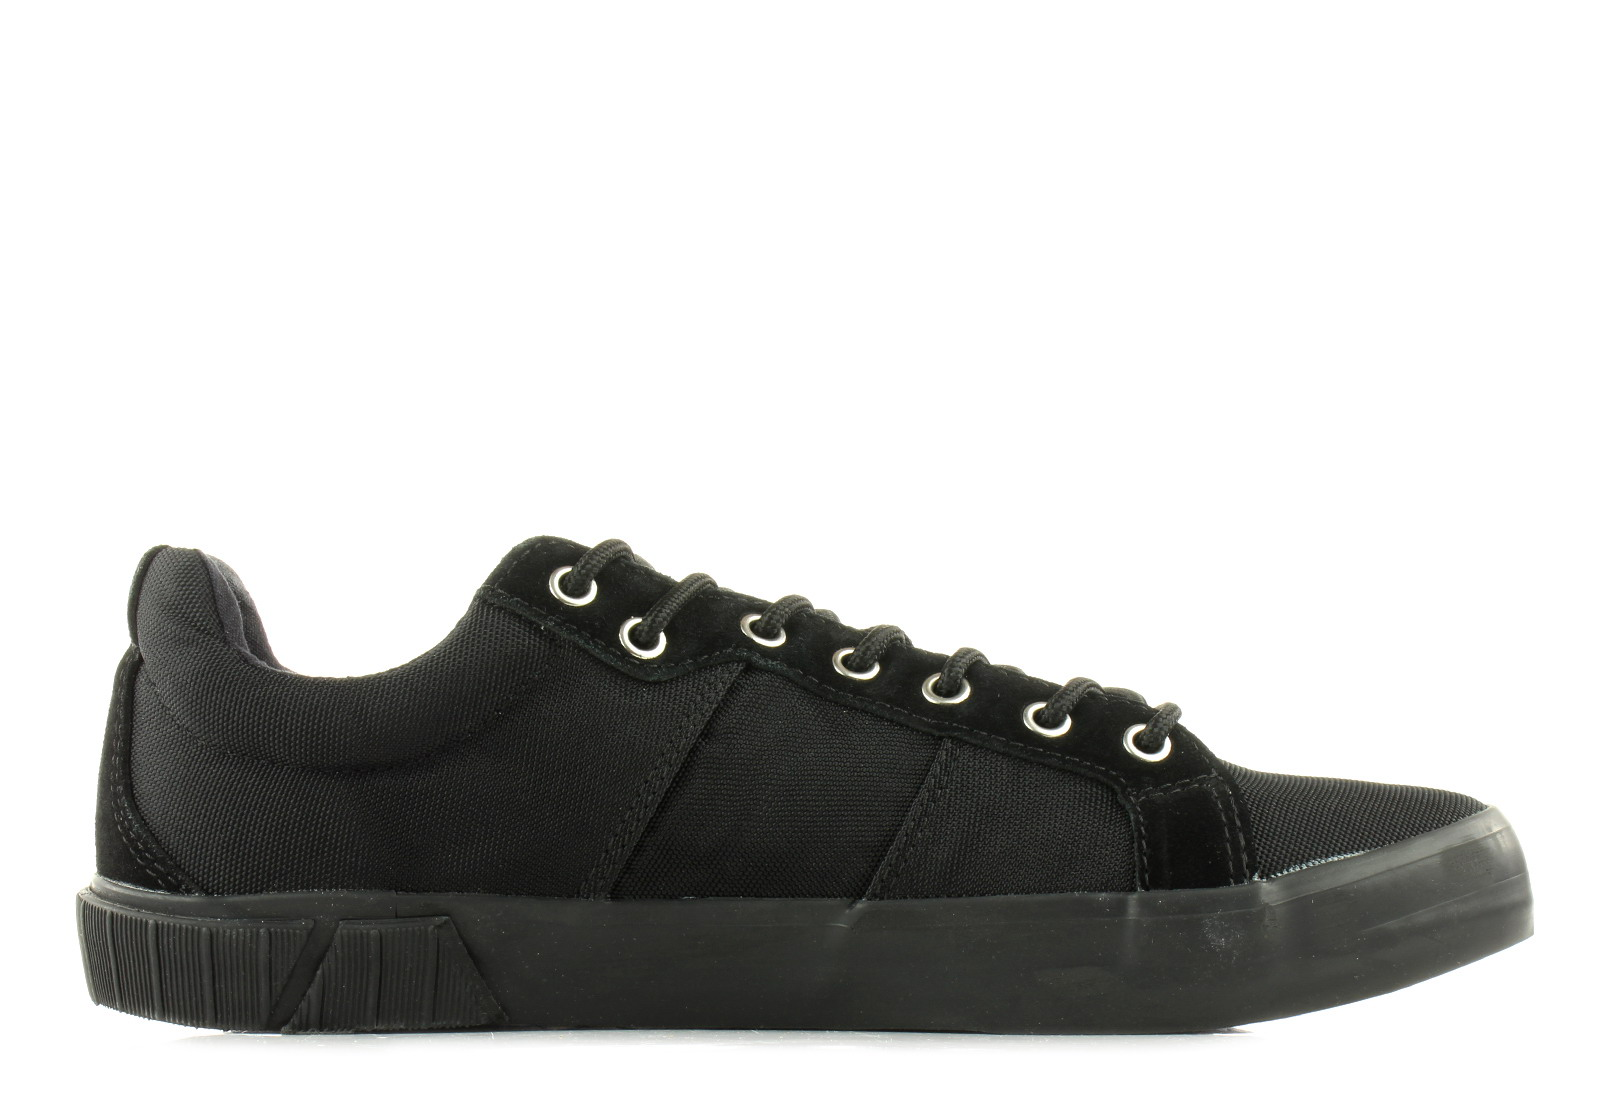 Replay Shoes Rush Rv760017s 003 Online Shop For